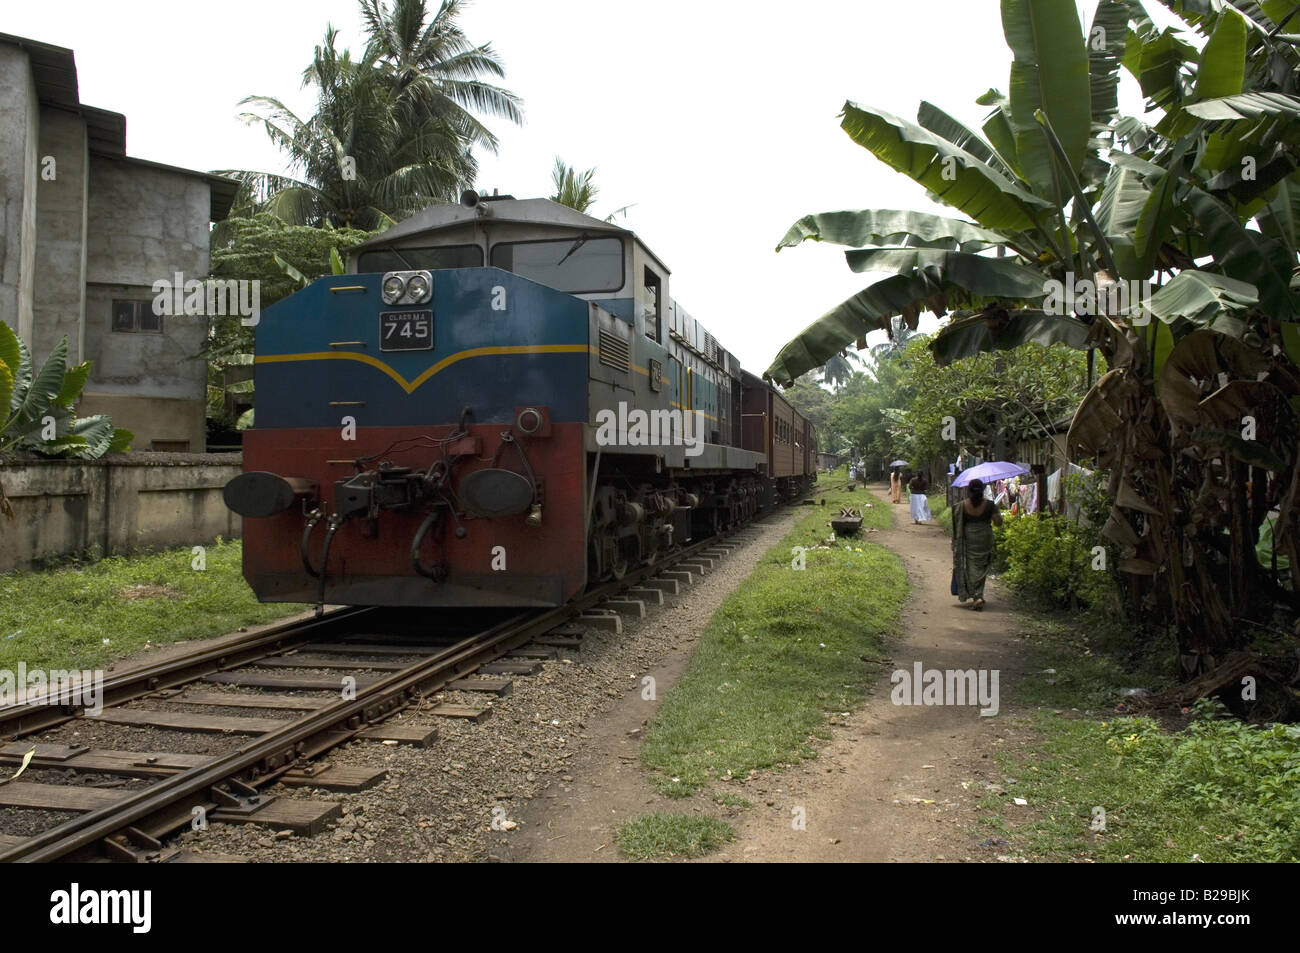 Galle to Colombo Railway Sri Lanka Date 20 04 2008 Ref ZB648 115261 0054 COMPULSORY CREDIT World Pictures Photoshot - Stock Image